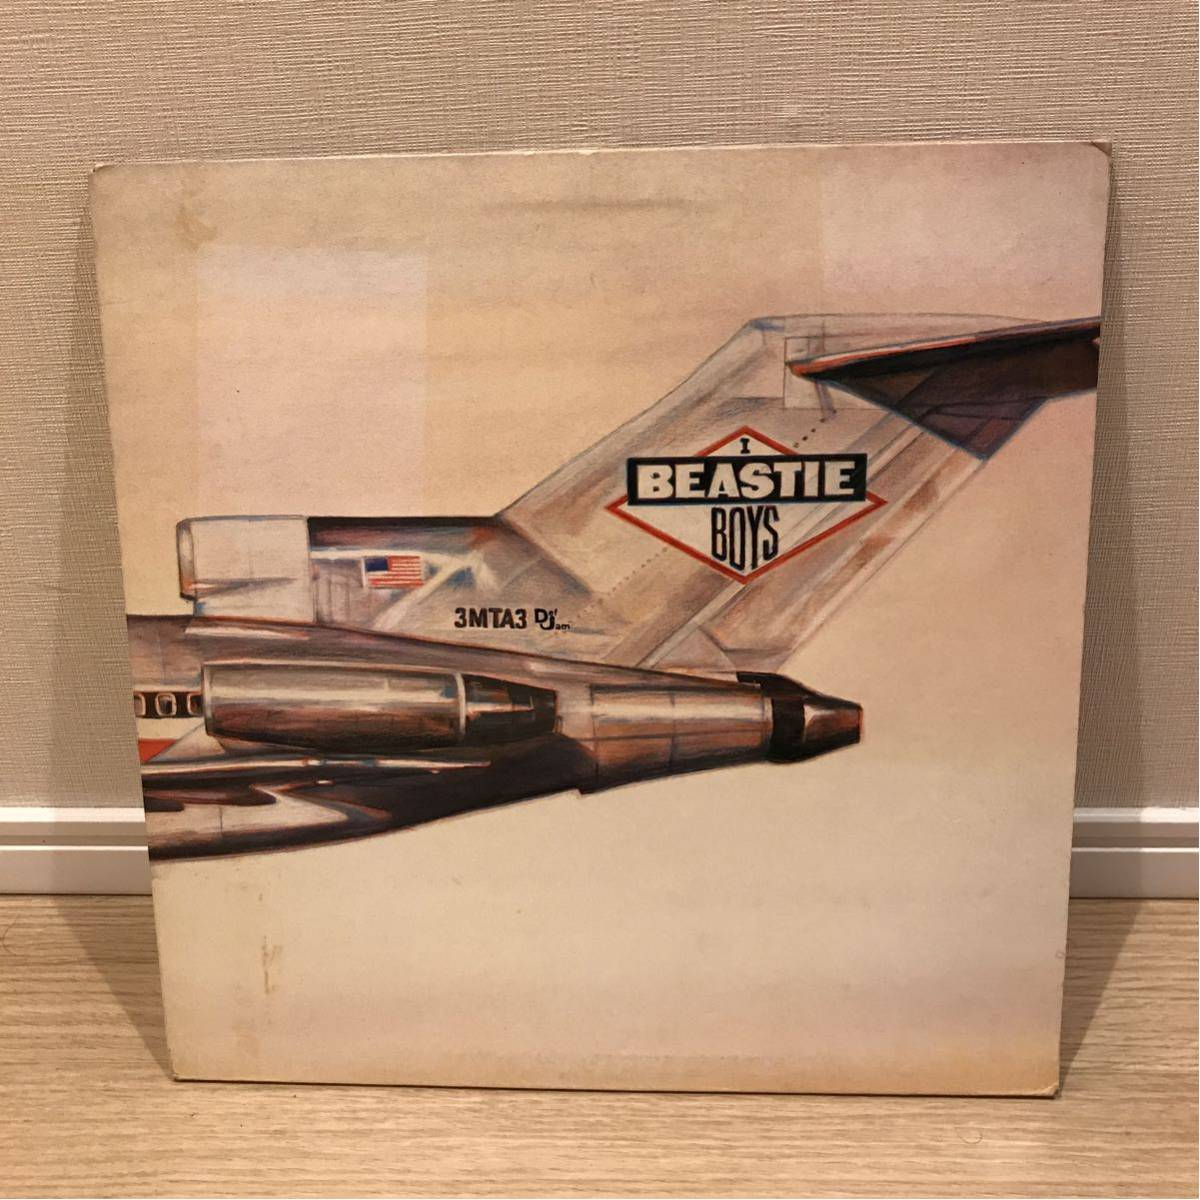 Beastie Boys LP『Licensed to ill』 ビースティボーイズ レコード アルバム Def Jam 『FIGHT FOR YOUR RIGHT』_画像1